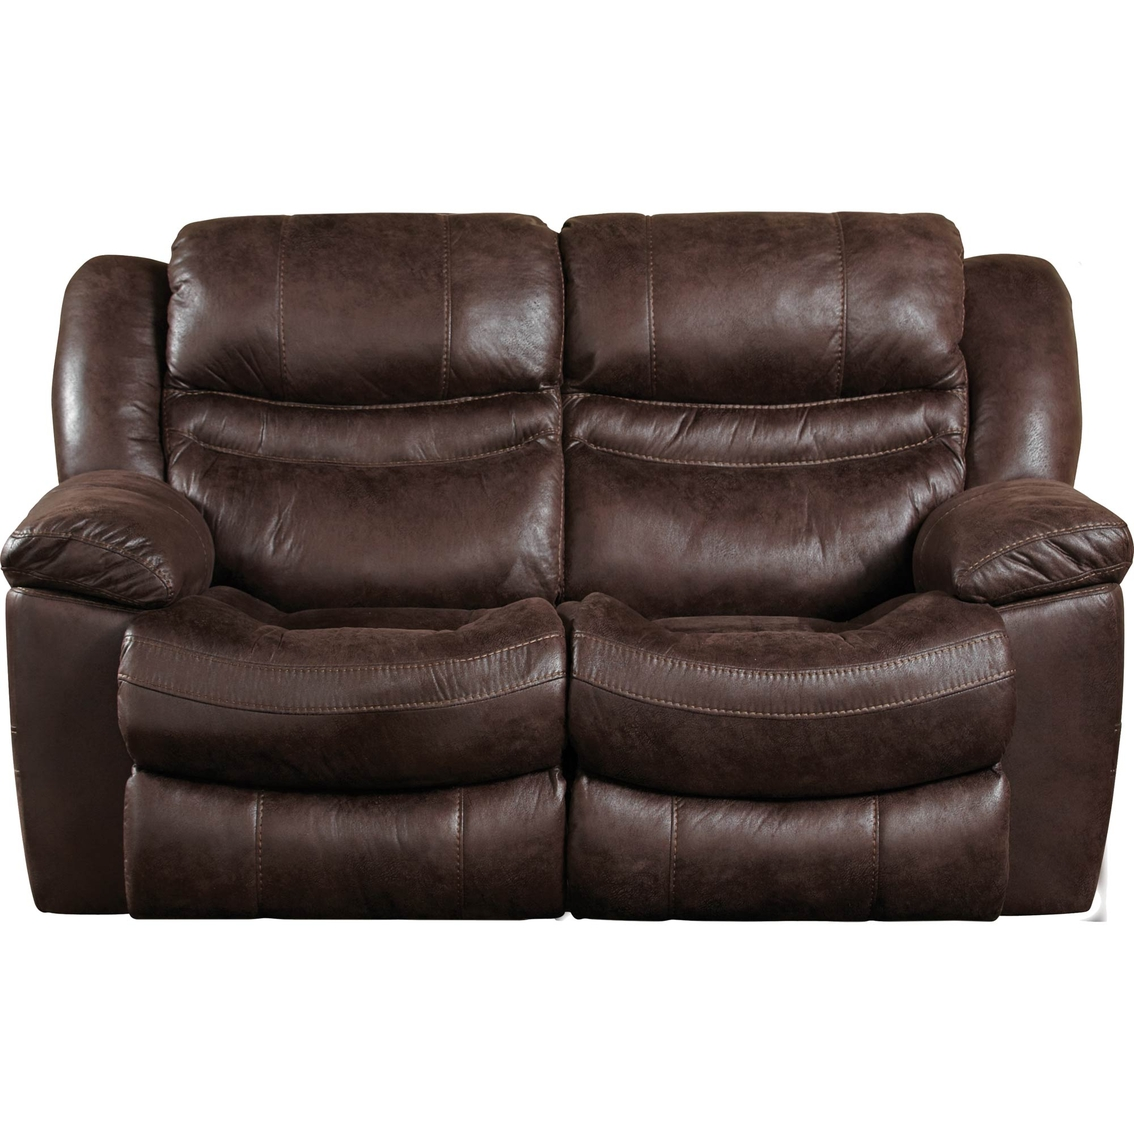 Catnapper Valiant Power Reclining Loveseat Sofas Amp Couches Home Amp Appliances